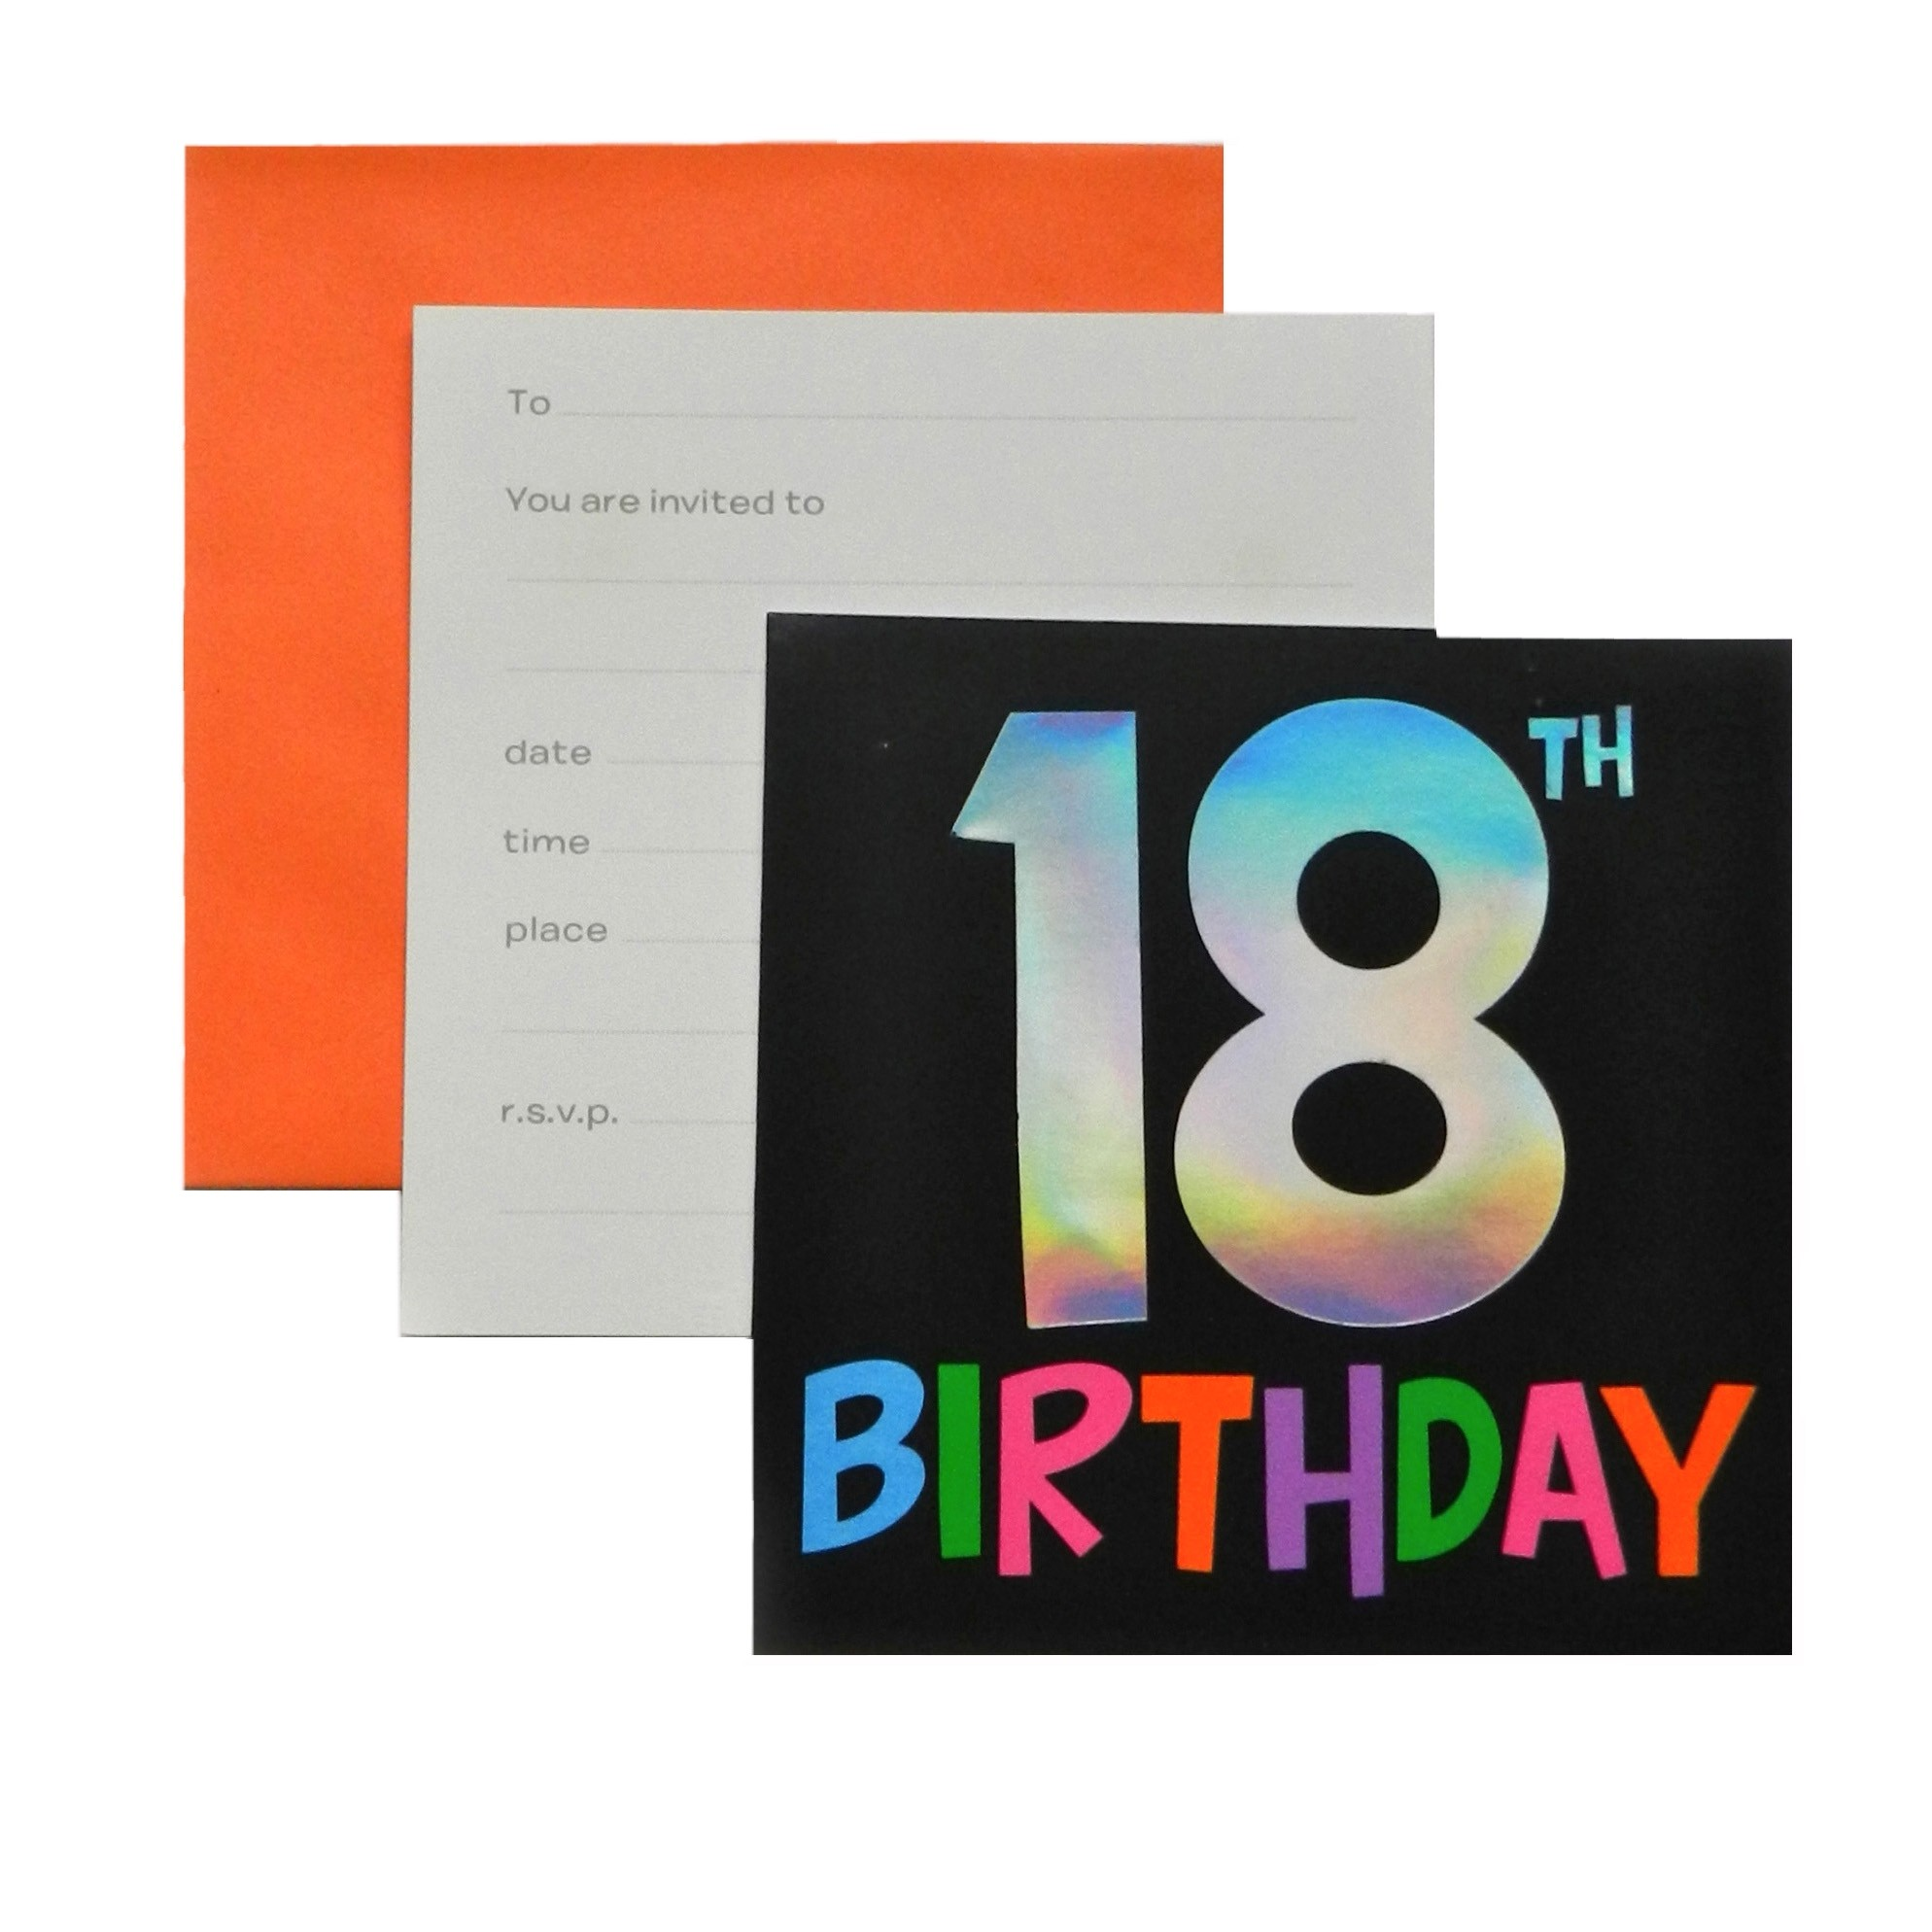 how to create birthday invitation card for whatsapp